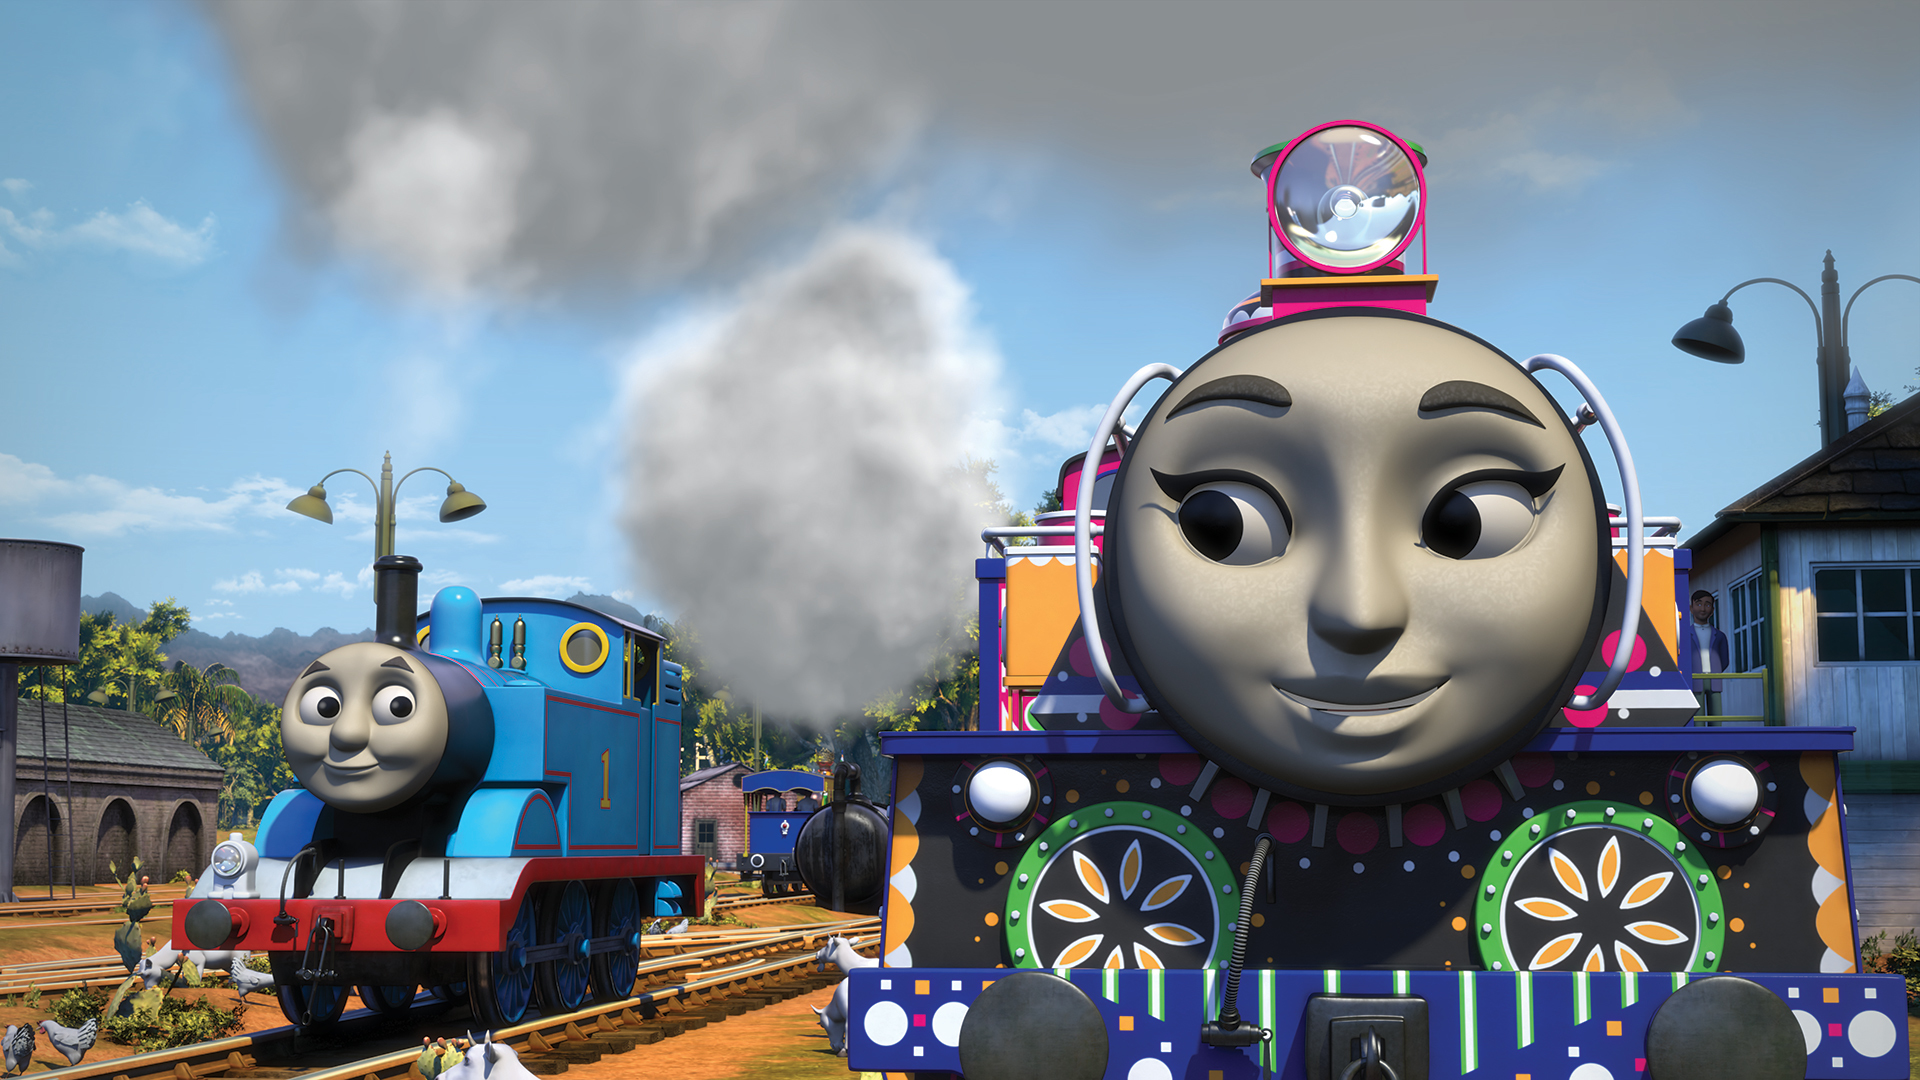 Thomas And Friends Wallpapers Posted By Zoey Mercado